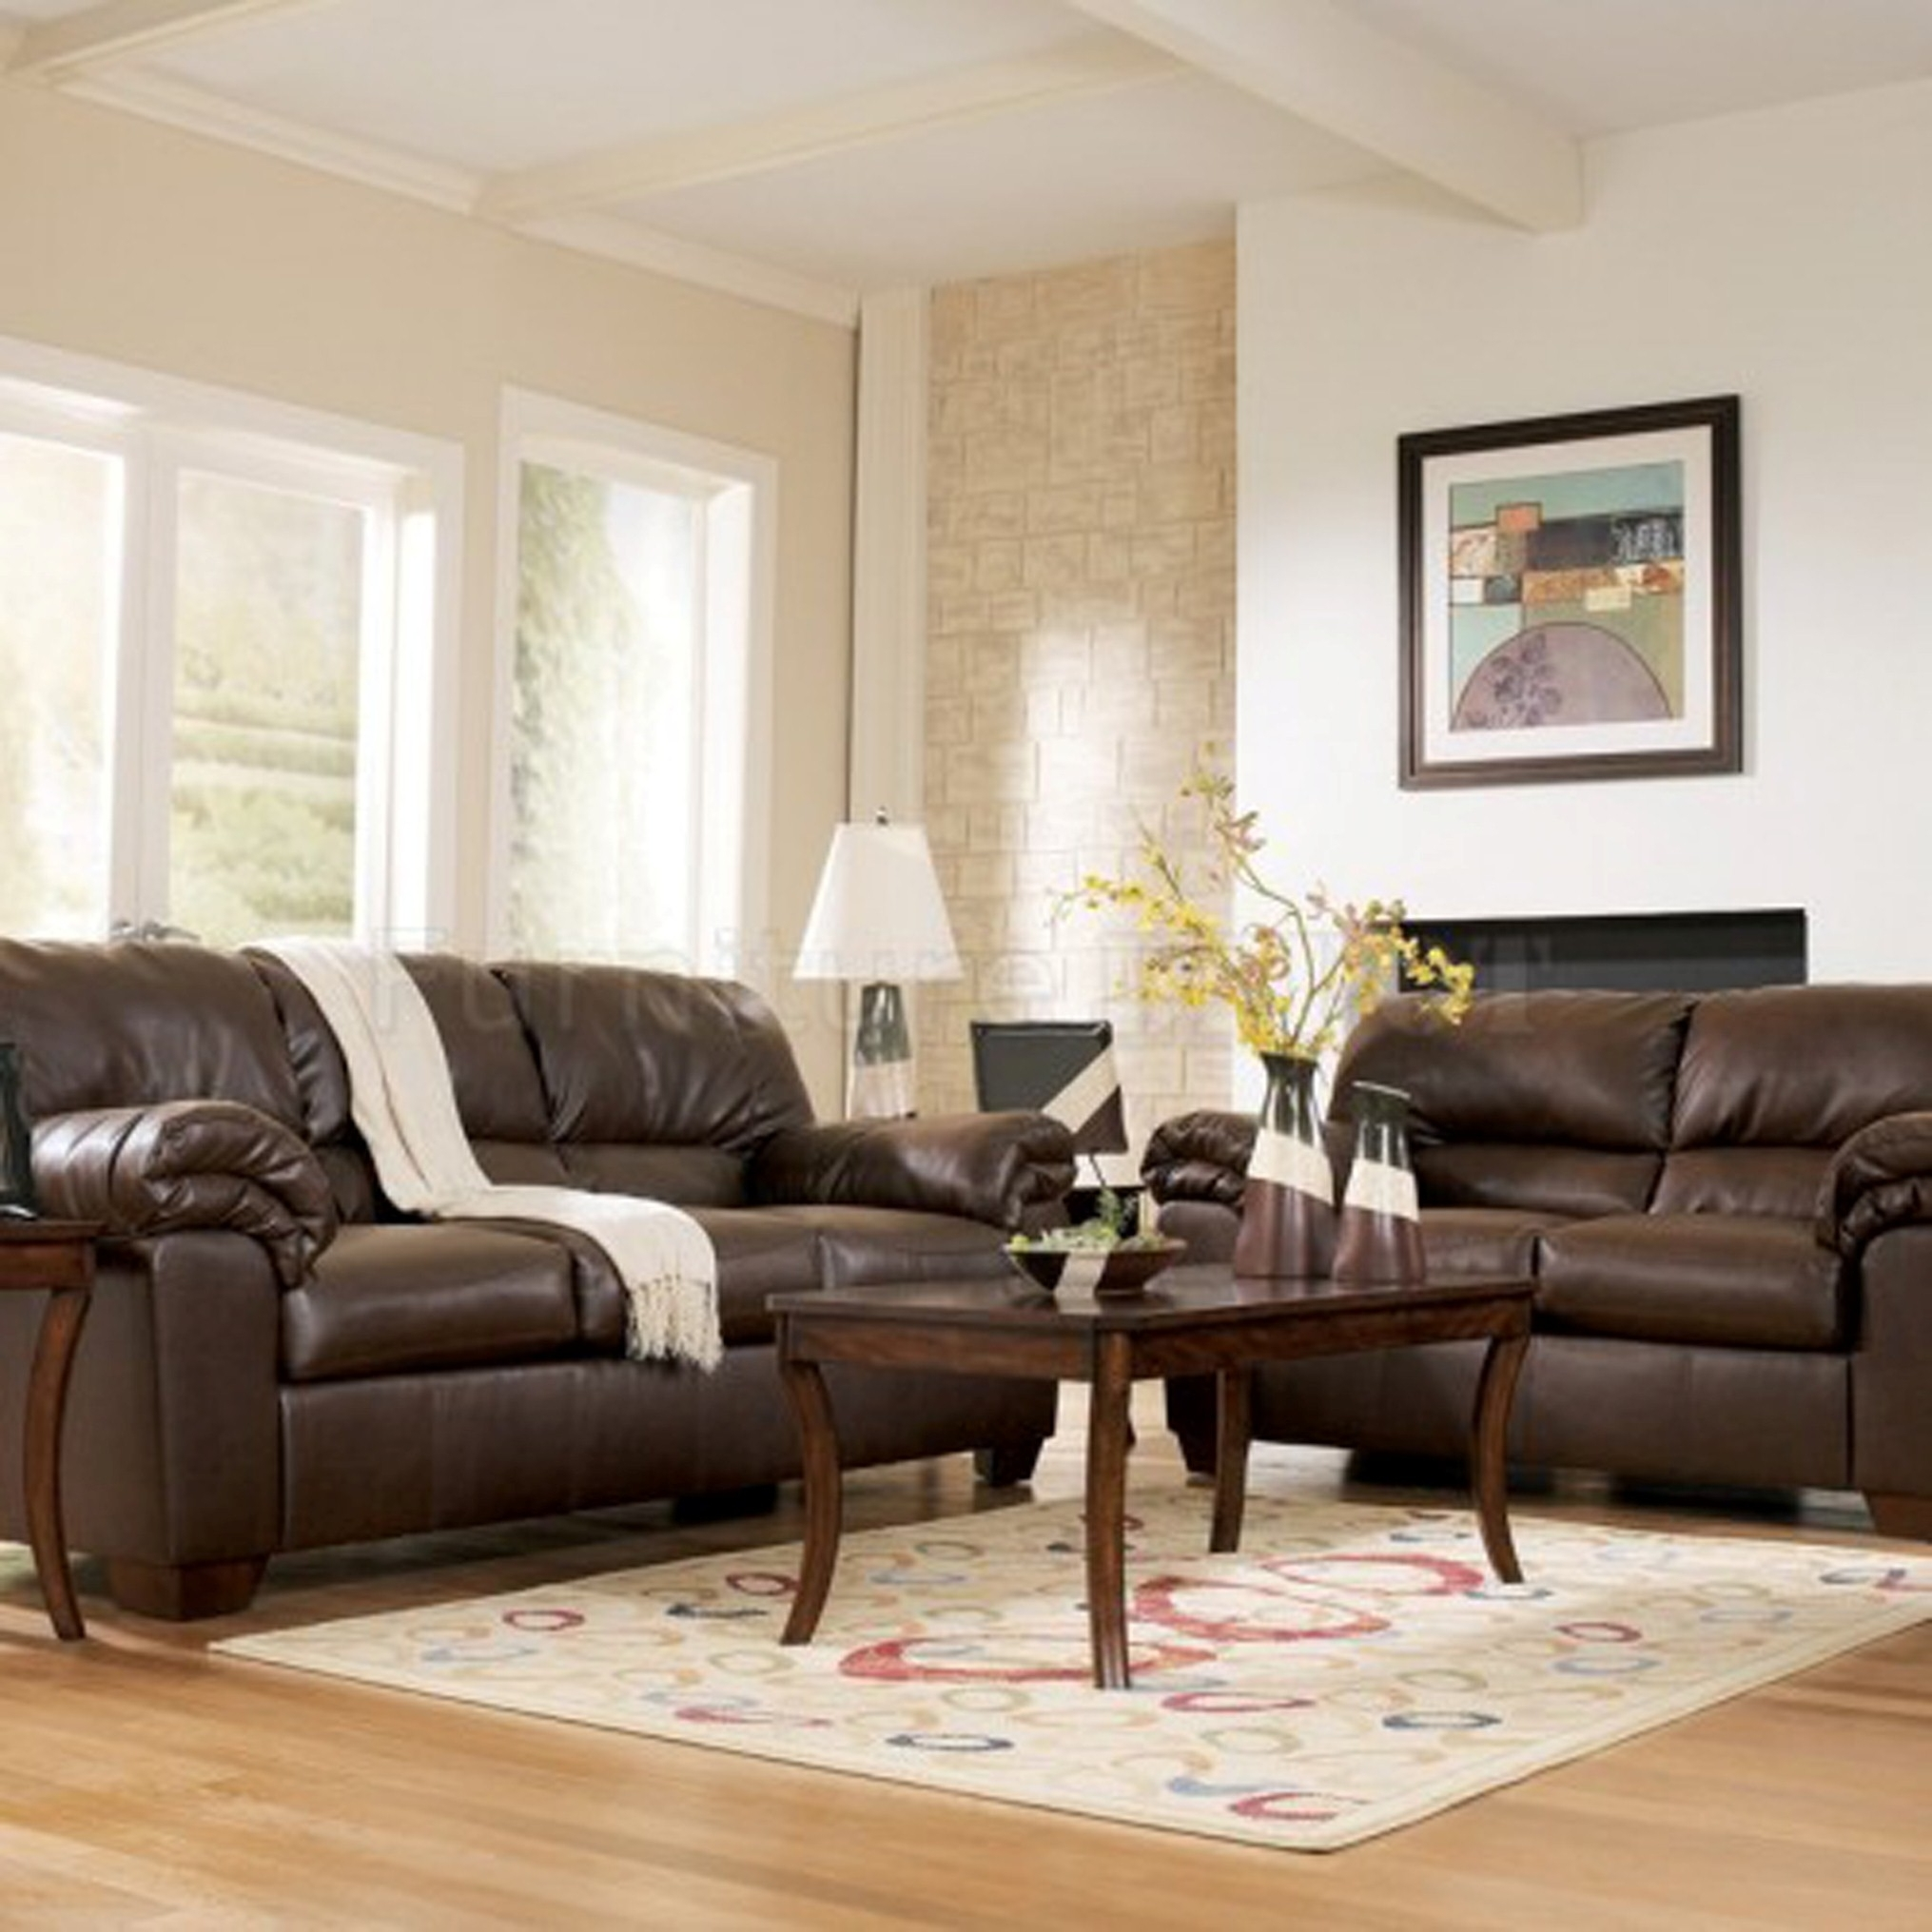 designs of sofa for living room living room ideas brown leather sofa 26414